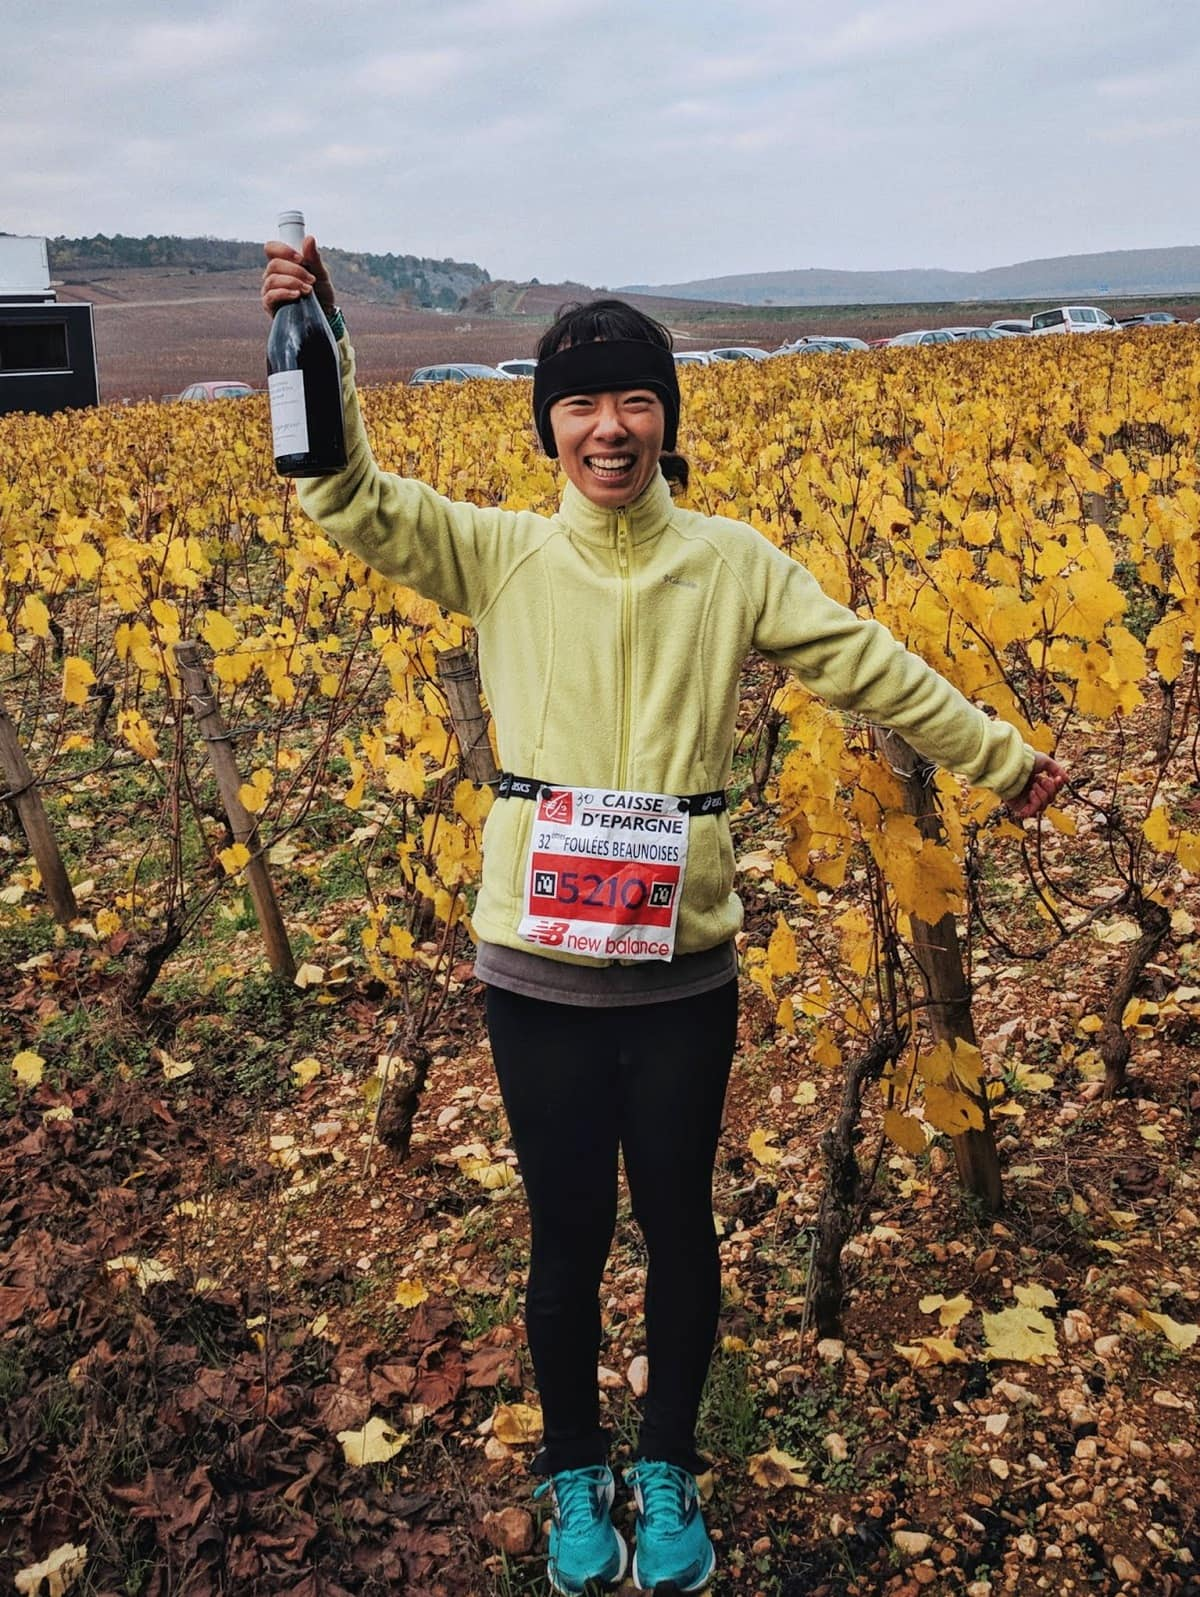 Posing in front of the vineyard with my finisher's bottle of wine at the 10km de Beaune